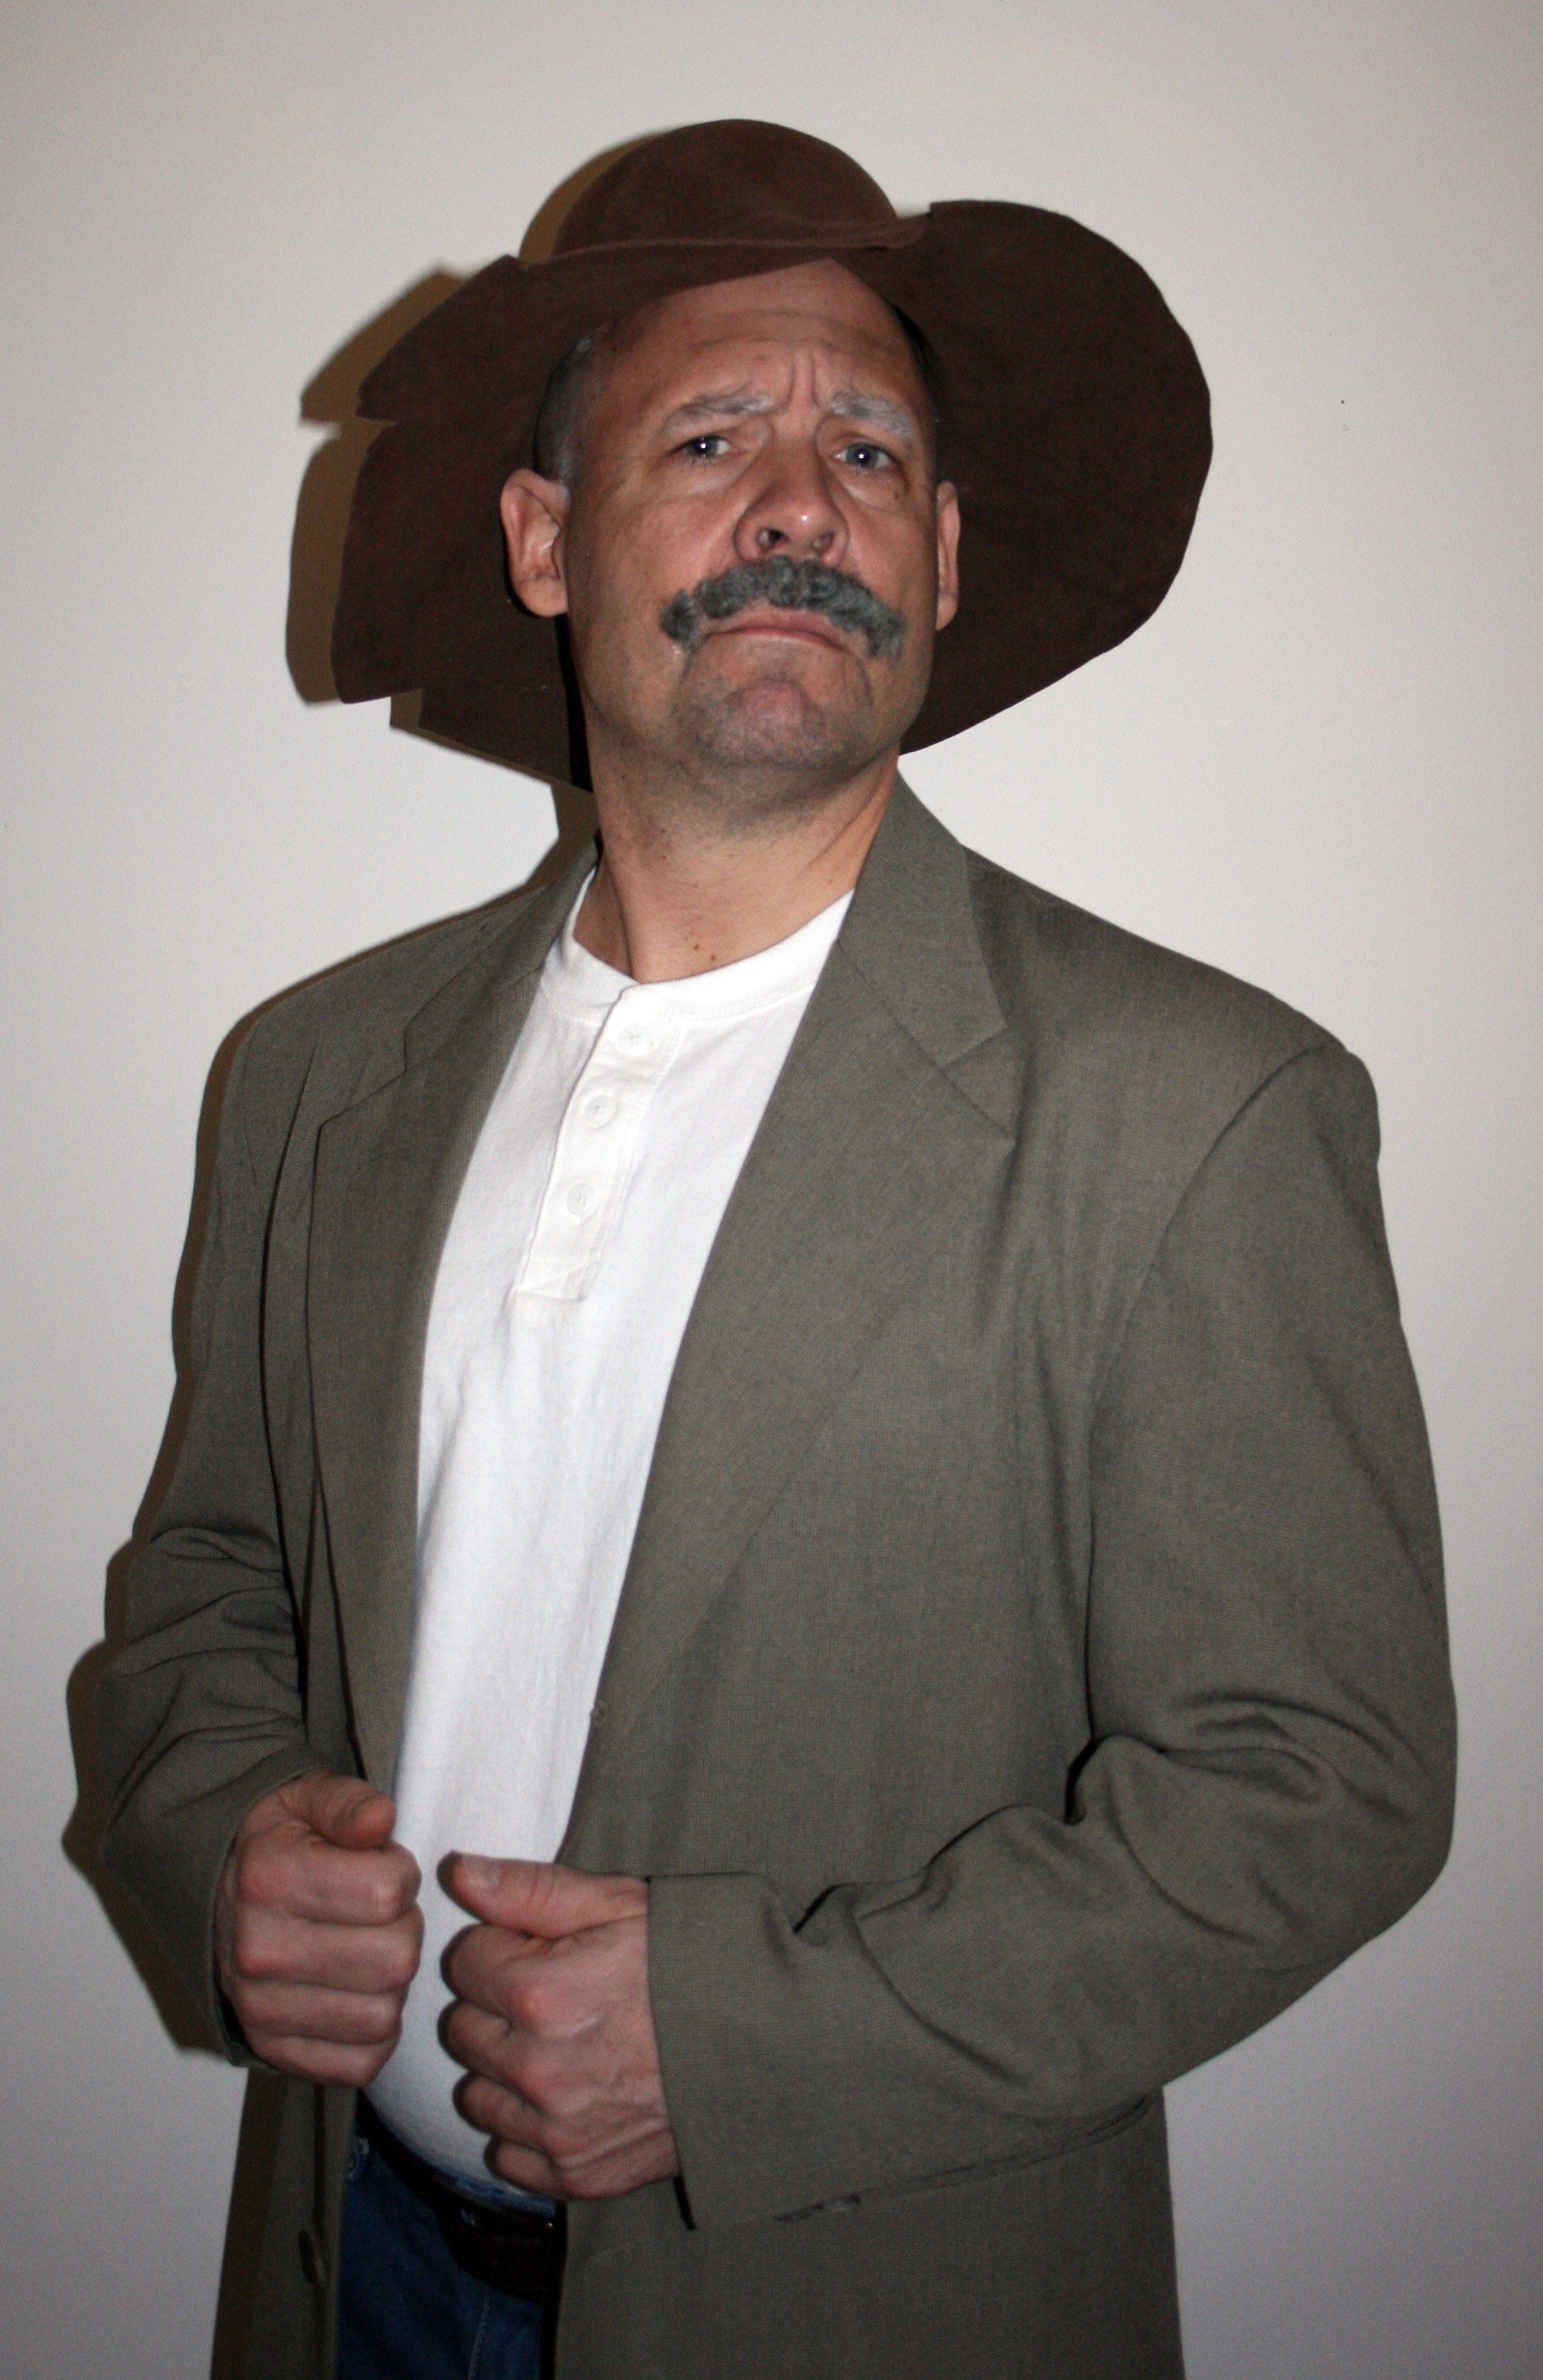 Michael Moran as Jeb Clampett